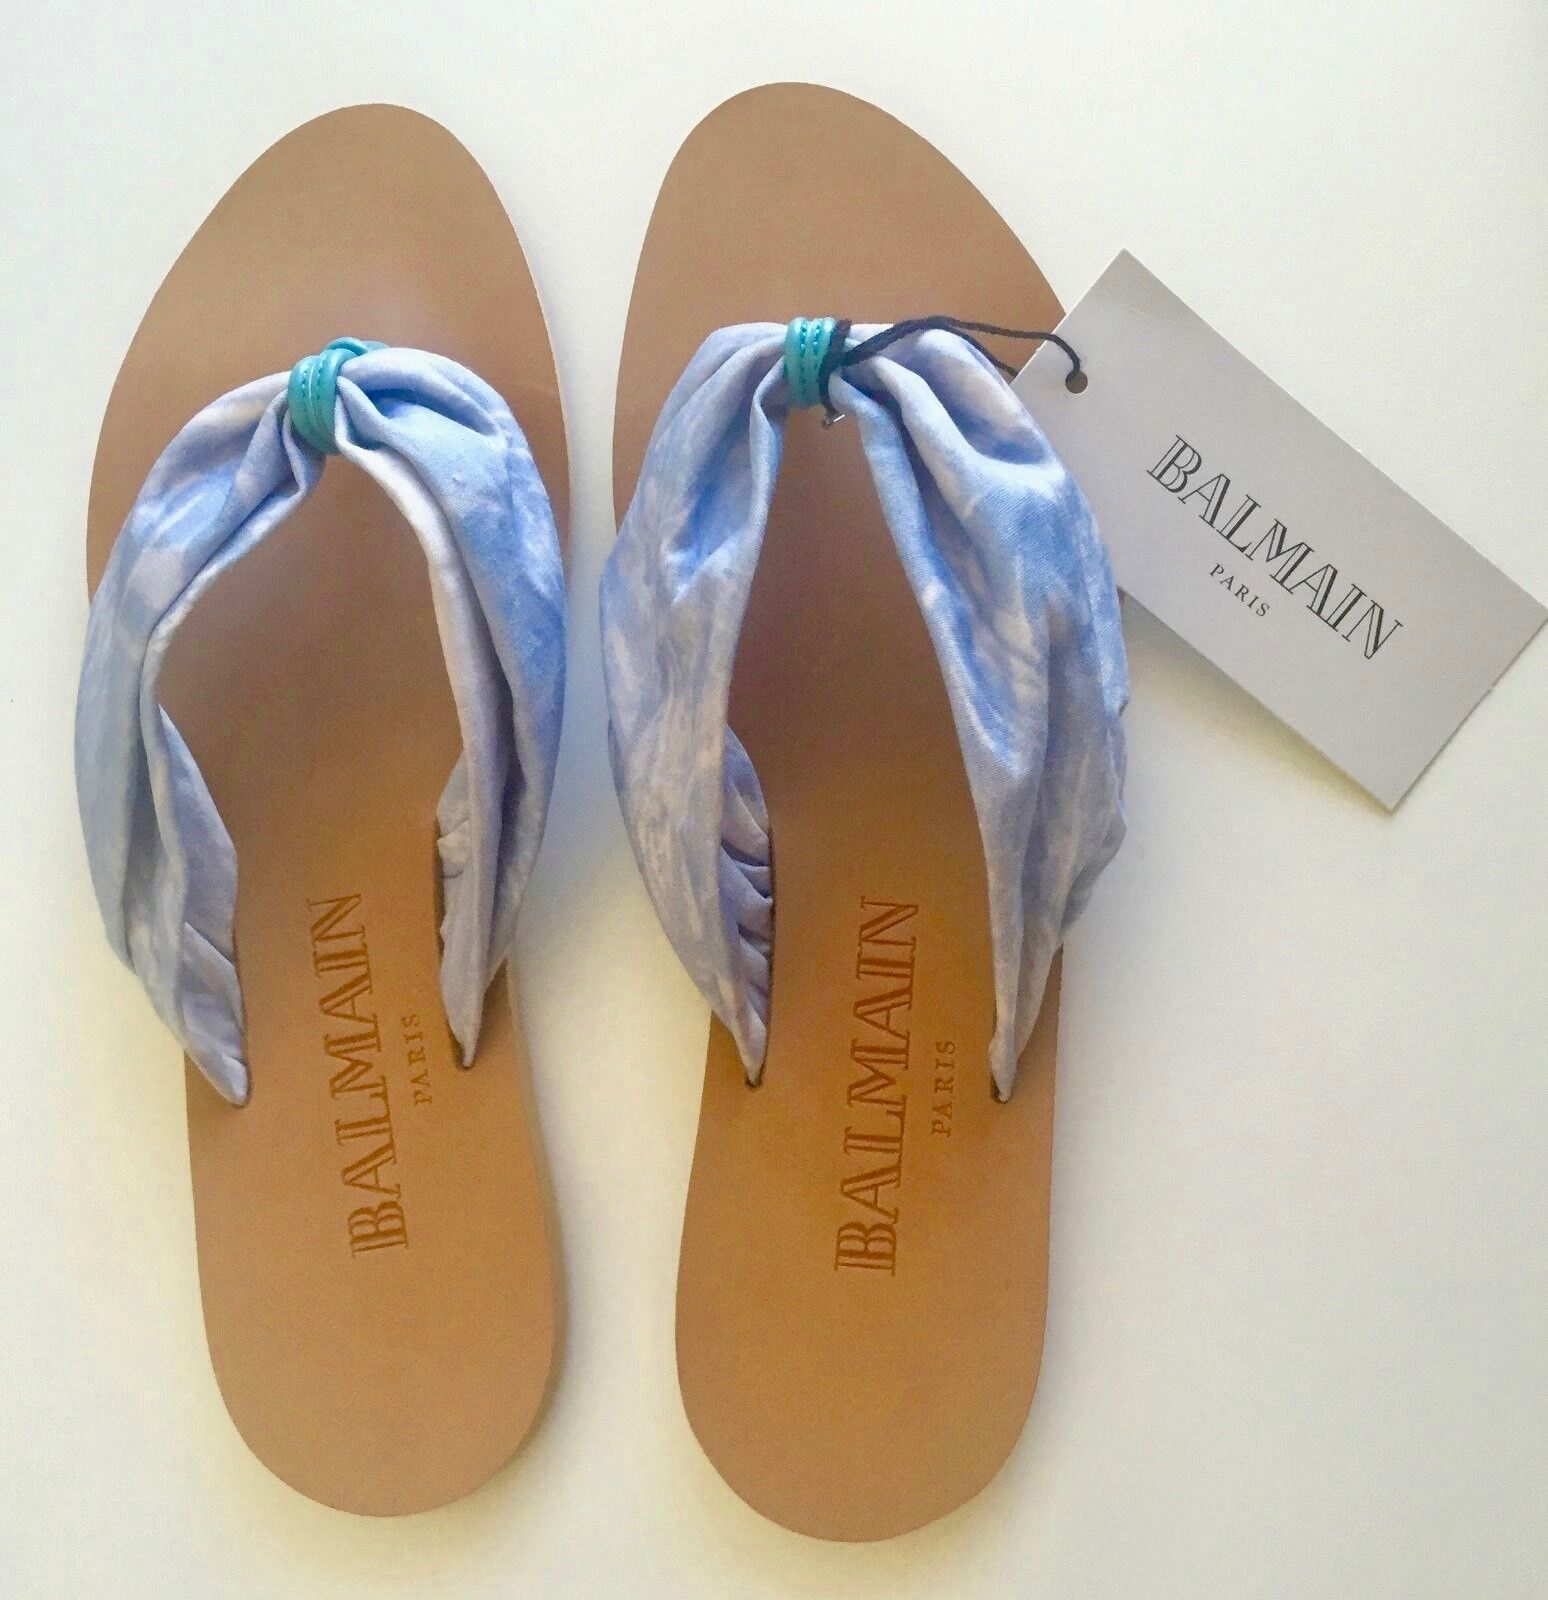 NEW BALMAIN Size 8 Leather & Fabric bluee Sandals Flip Flops Made in